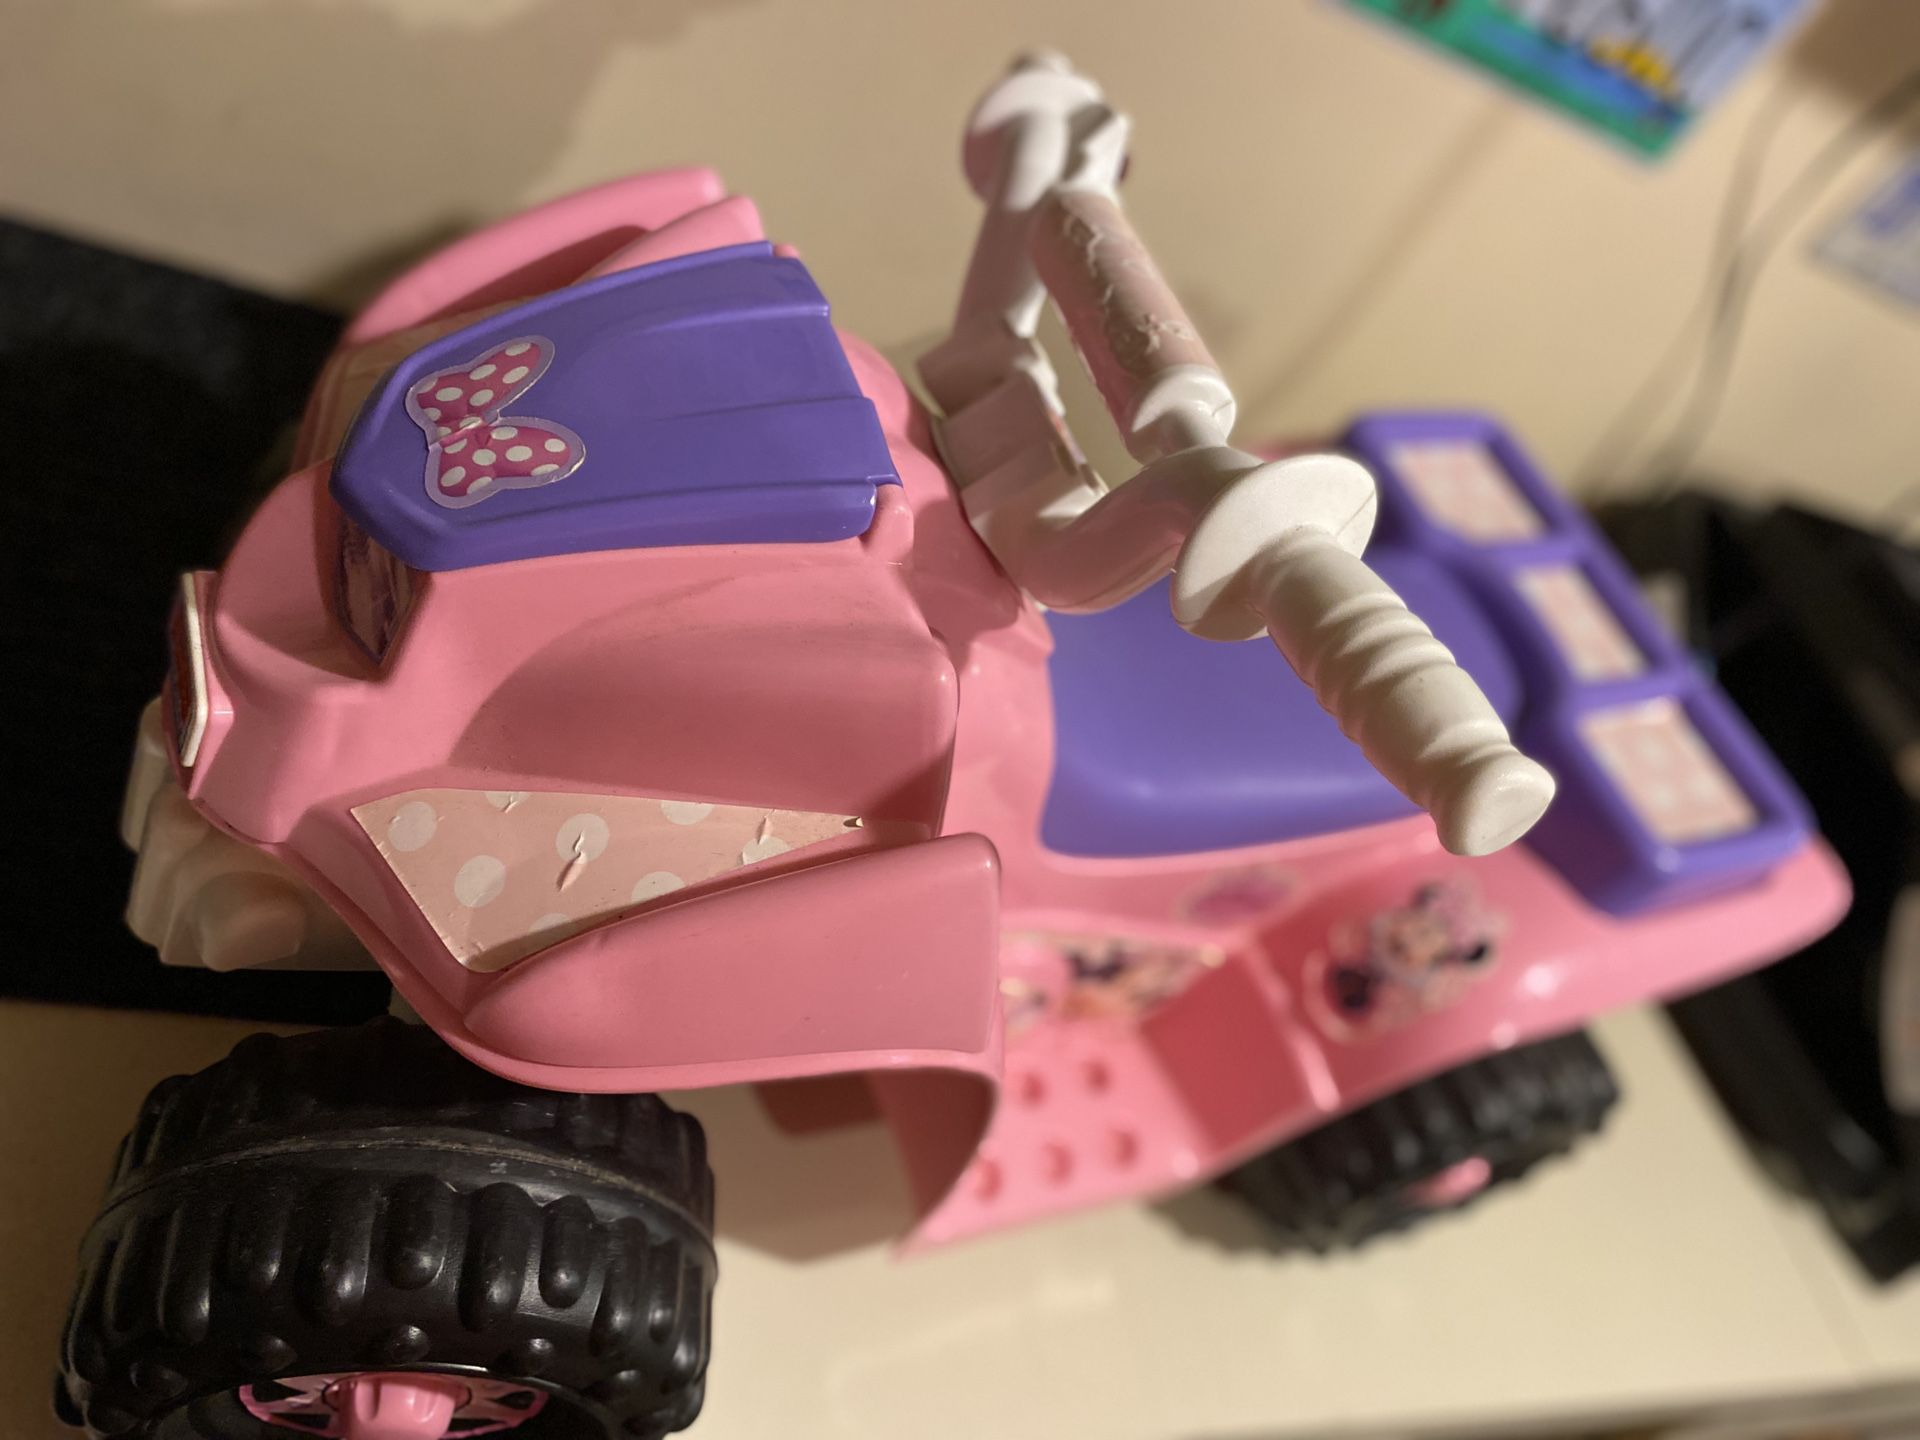 Electric toddler toy